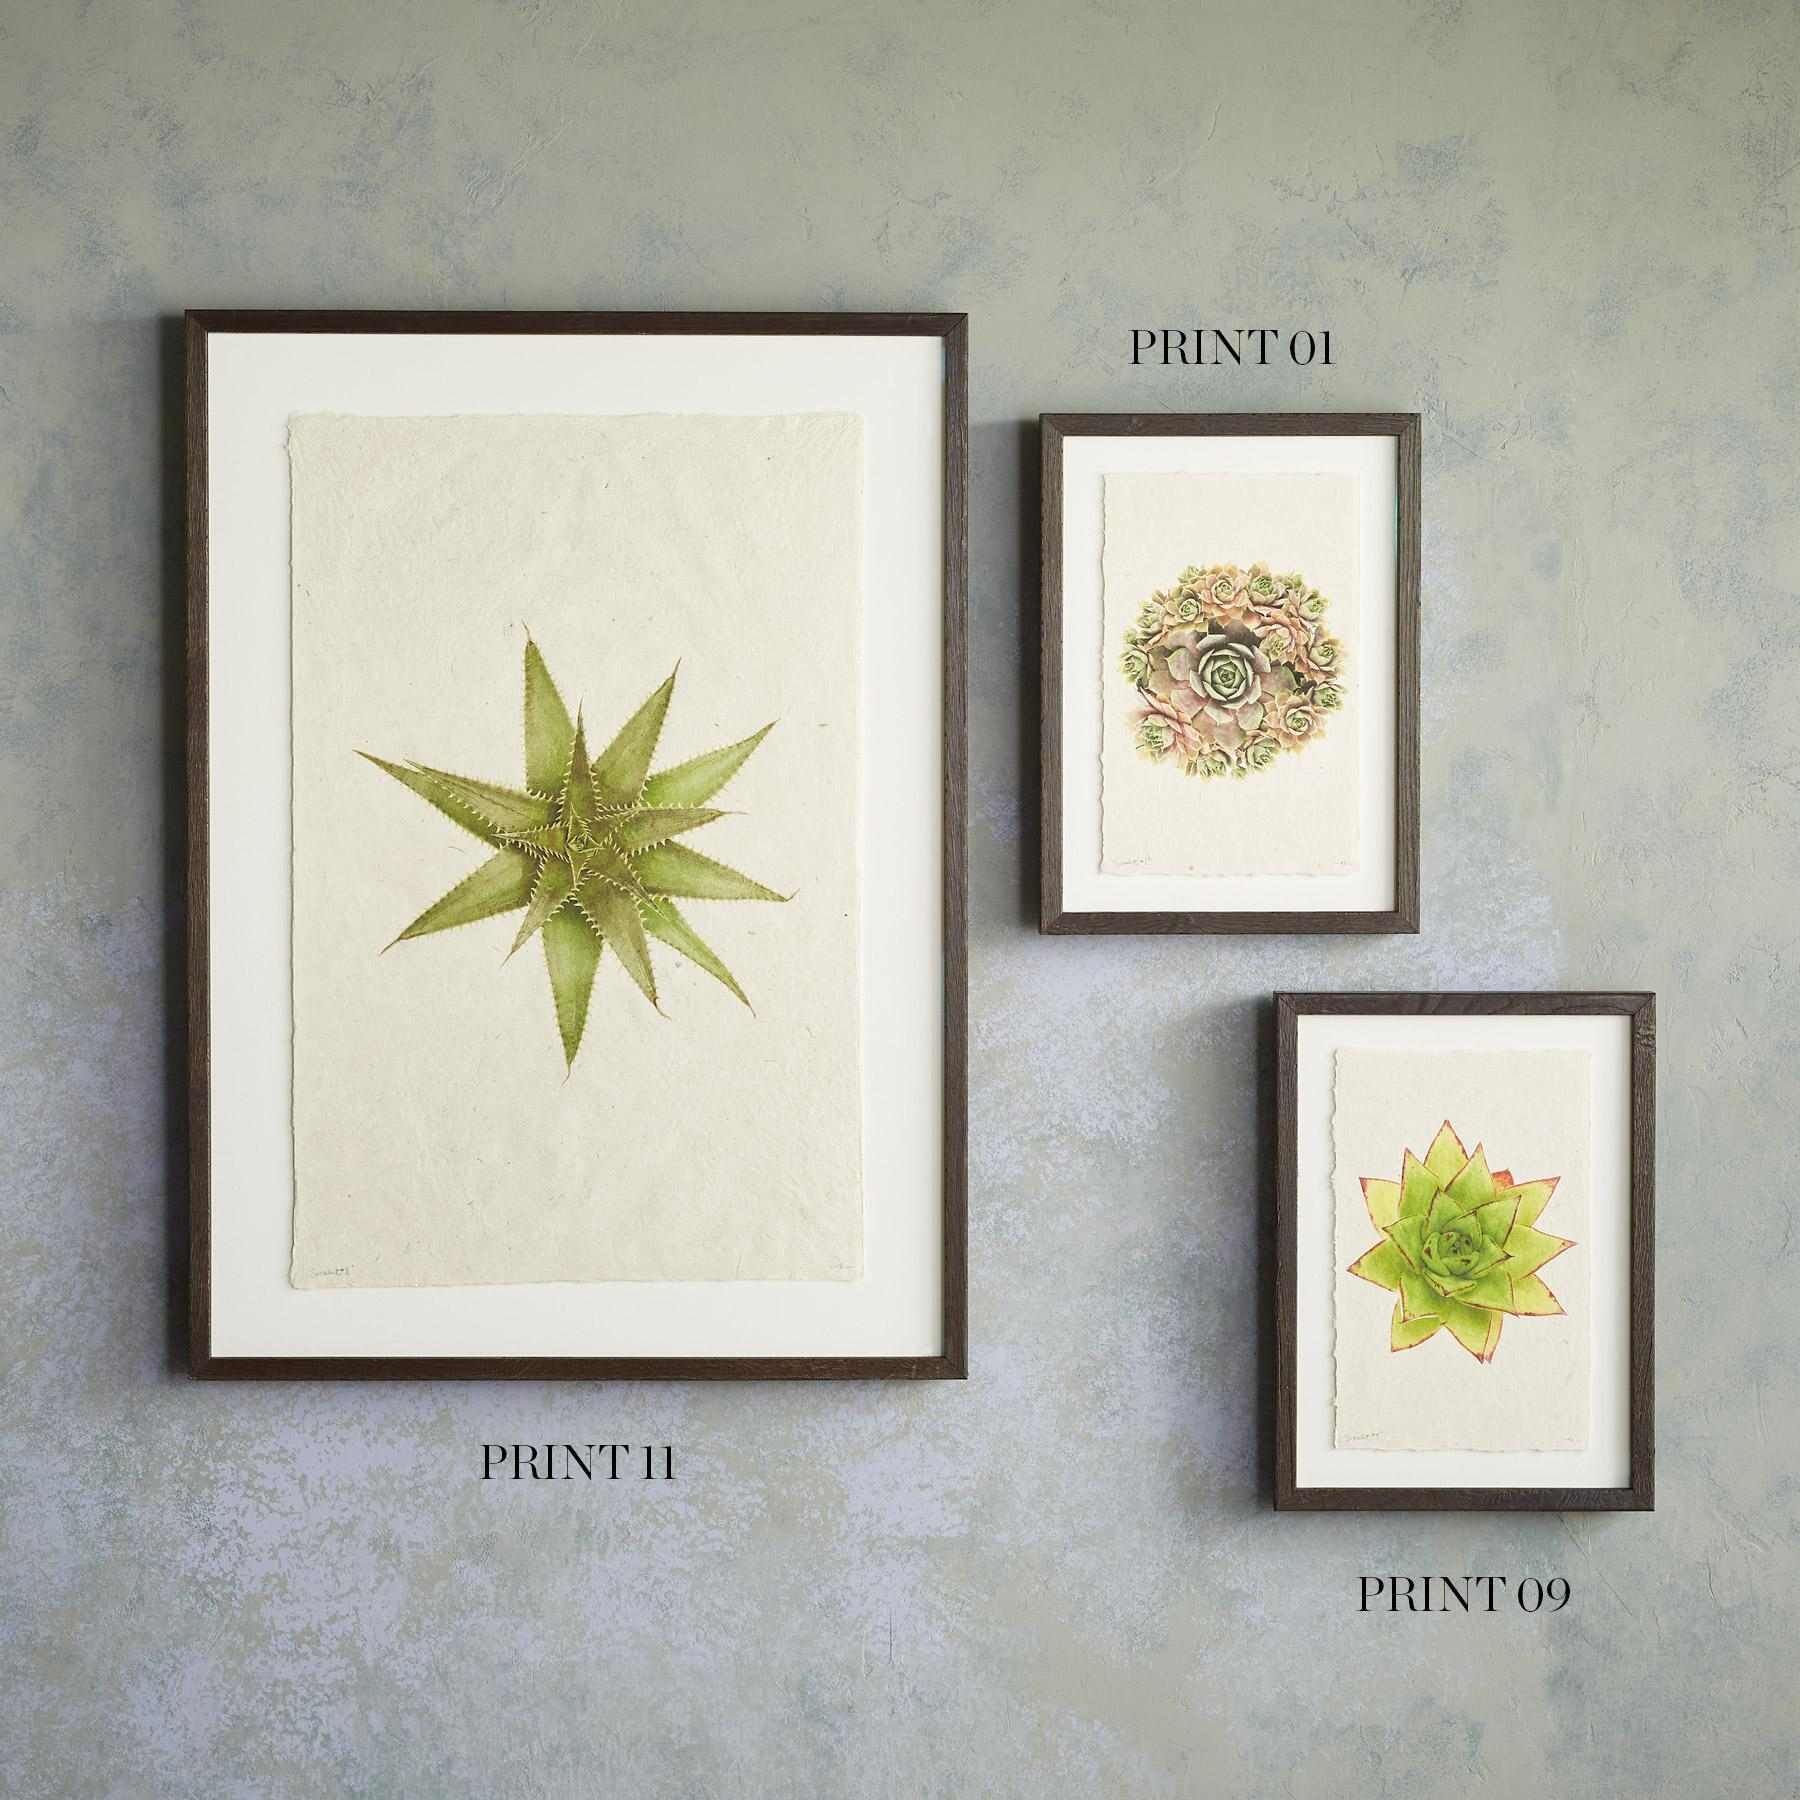 SUCCULENT STUDIES PRINTS: View 5